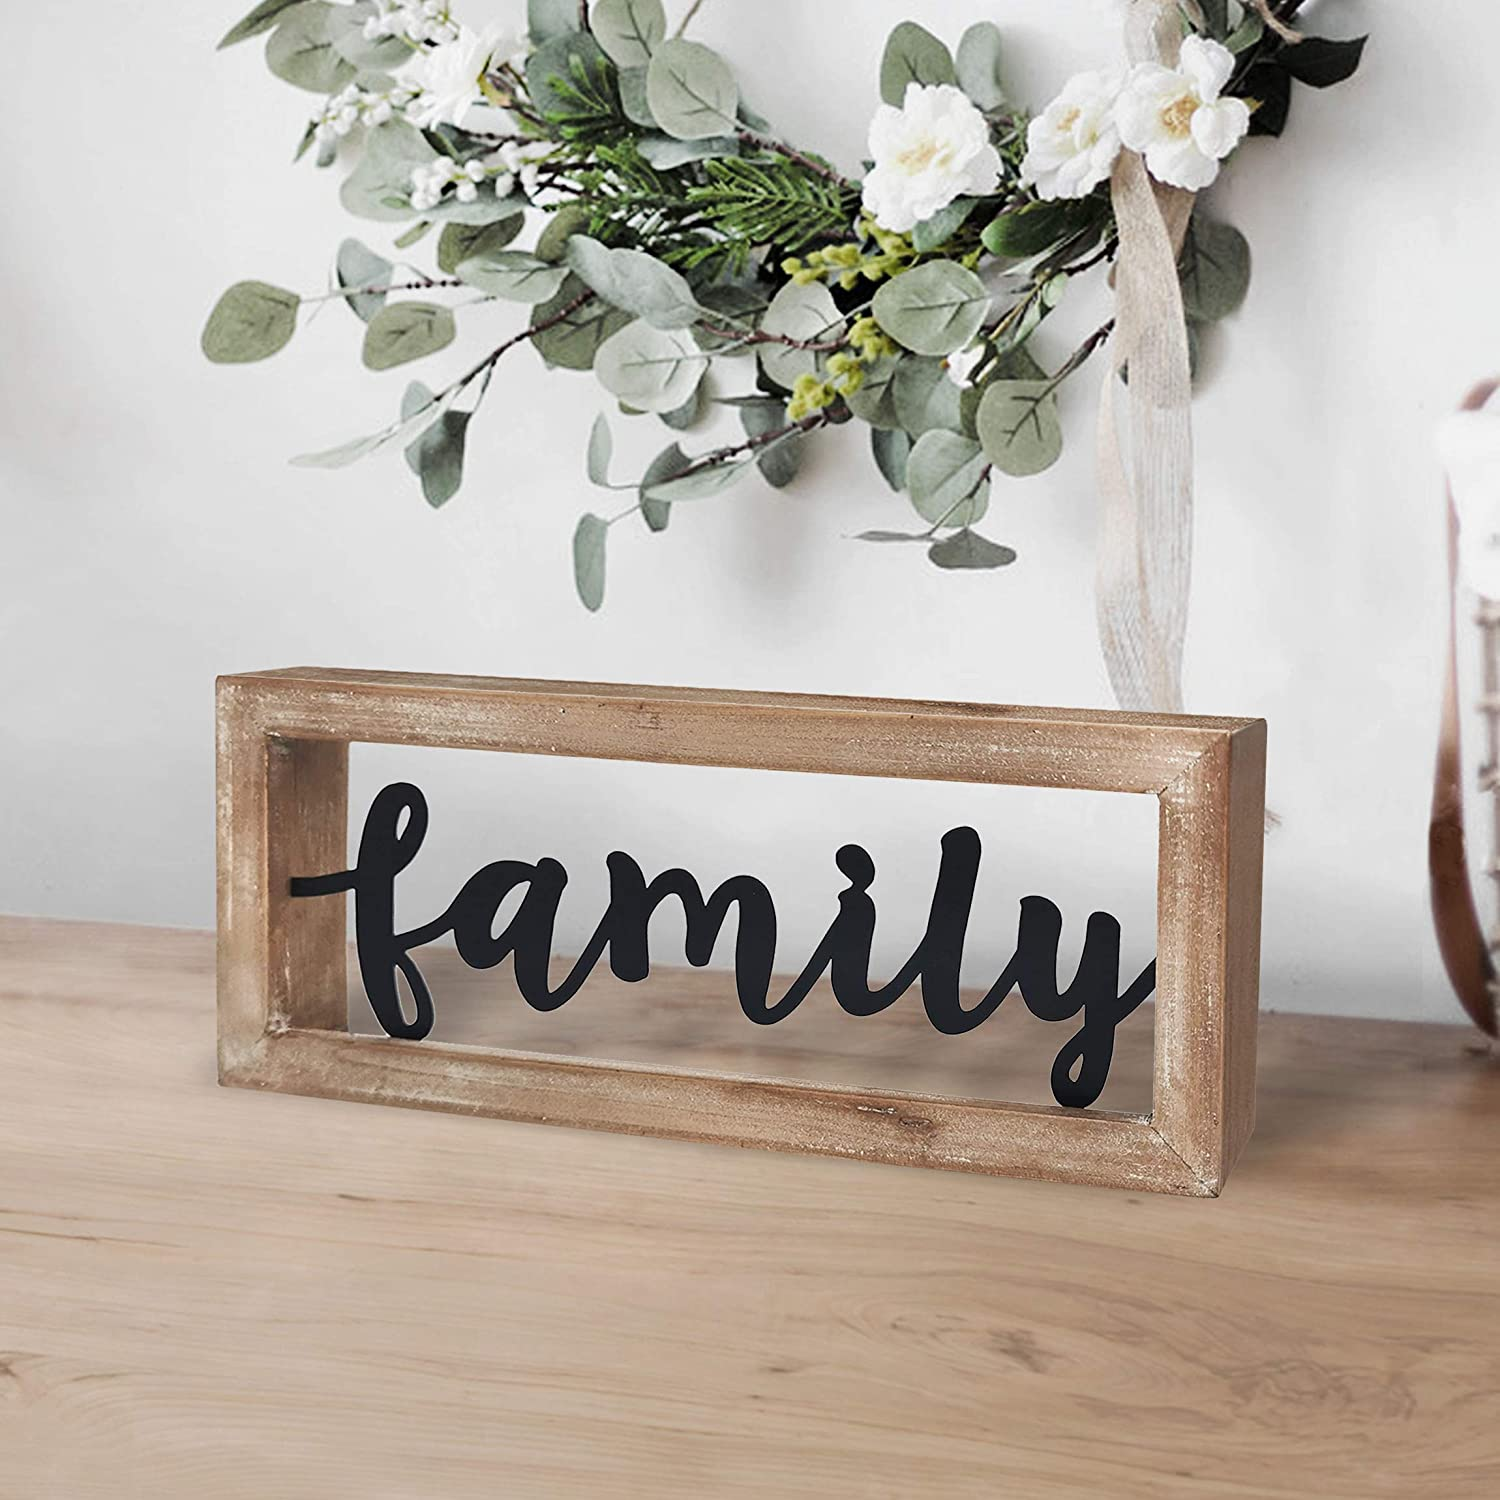 Tabletop Standing Family Sign Iron And Wood Design Home Decor   Buy Decor  Signs,Wall Decor Signs,Rustic Wall Decor Signs Product on Alibaba.com